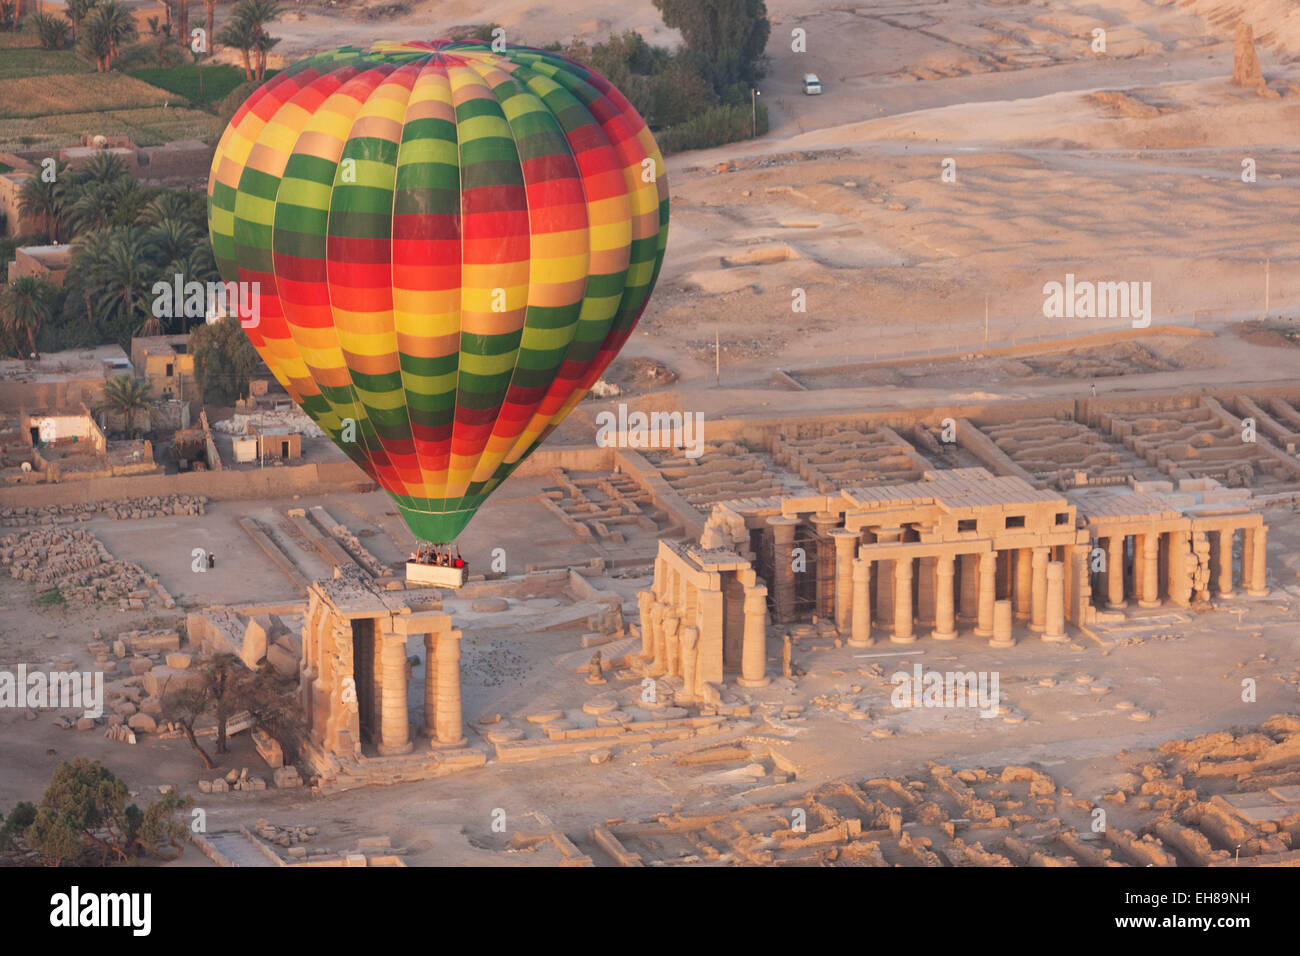 A hot air balloon flight over a ruined temple near Luxor, Thebes, Egypt, North Africa, Africa - Stock Image